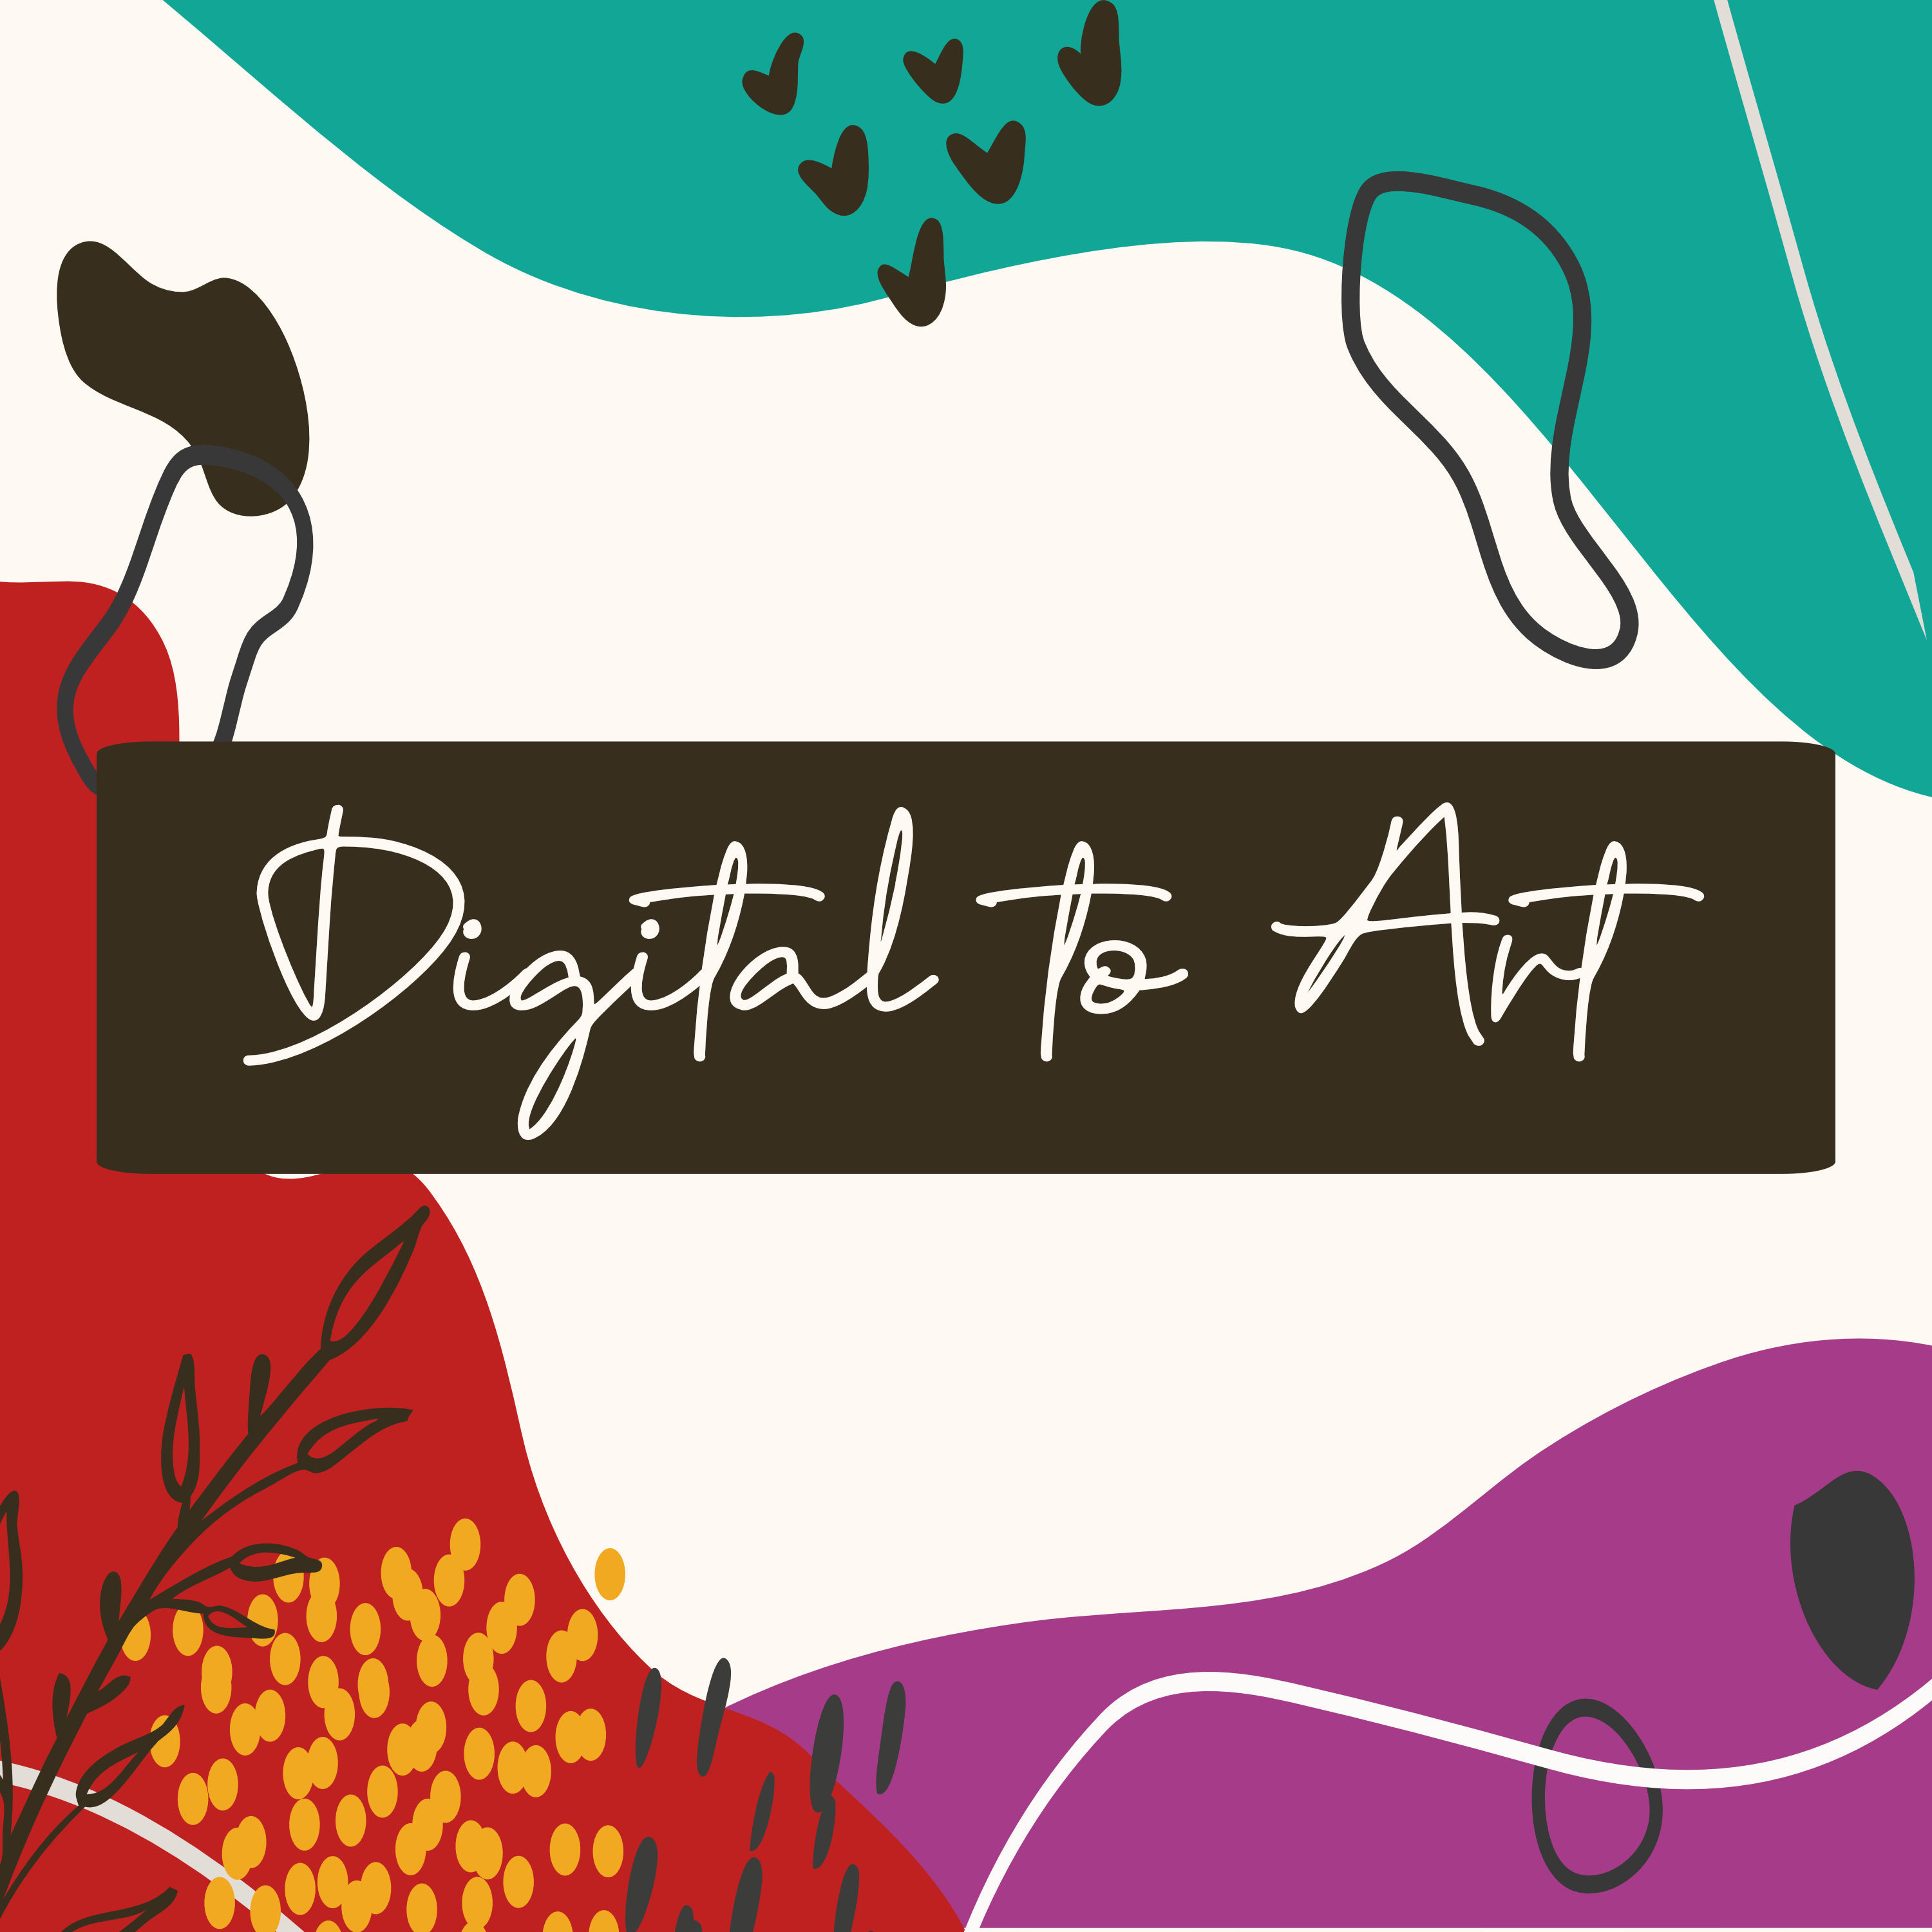 Digital To Art's profile picture